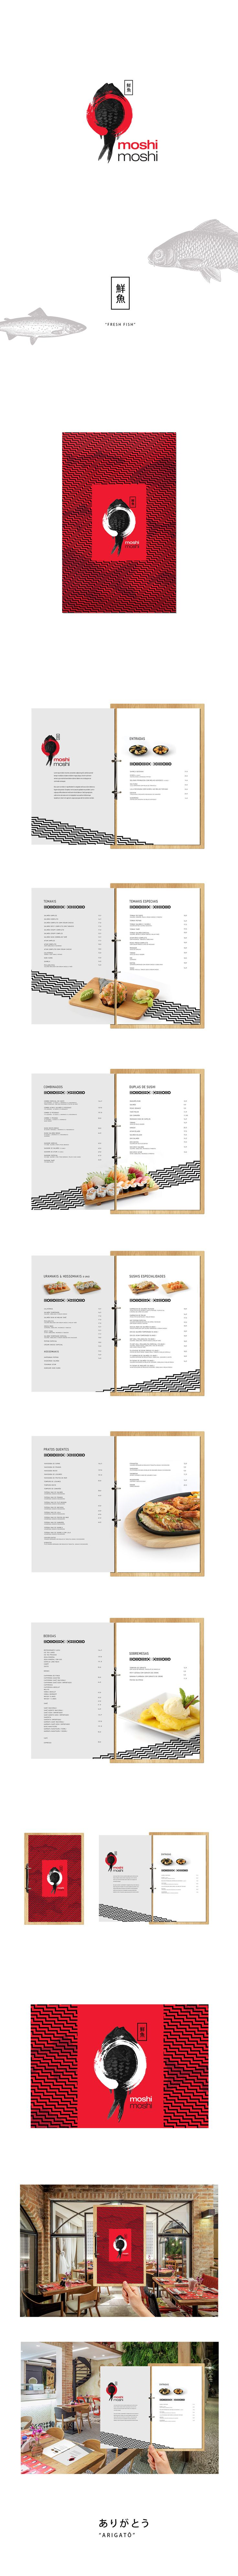 Moshi Moshi Japanese Restaurant Menu on Behance